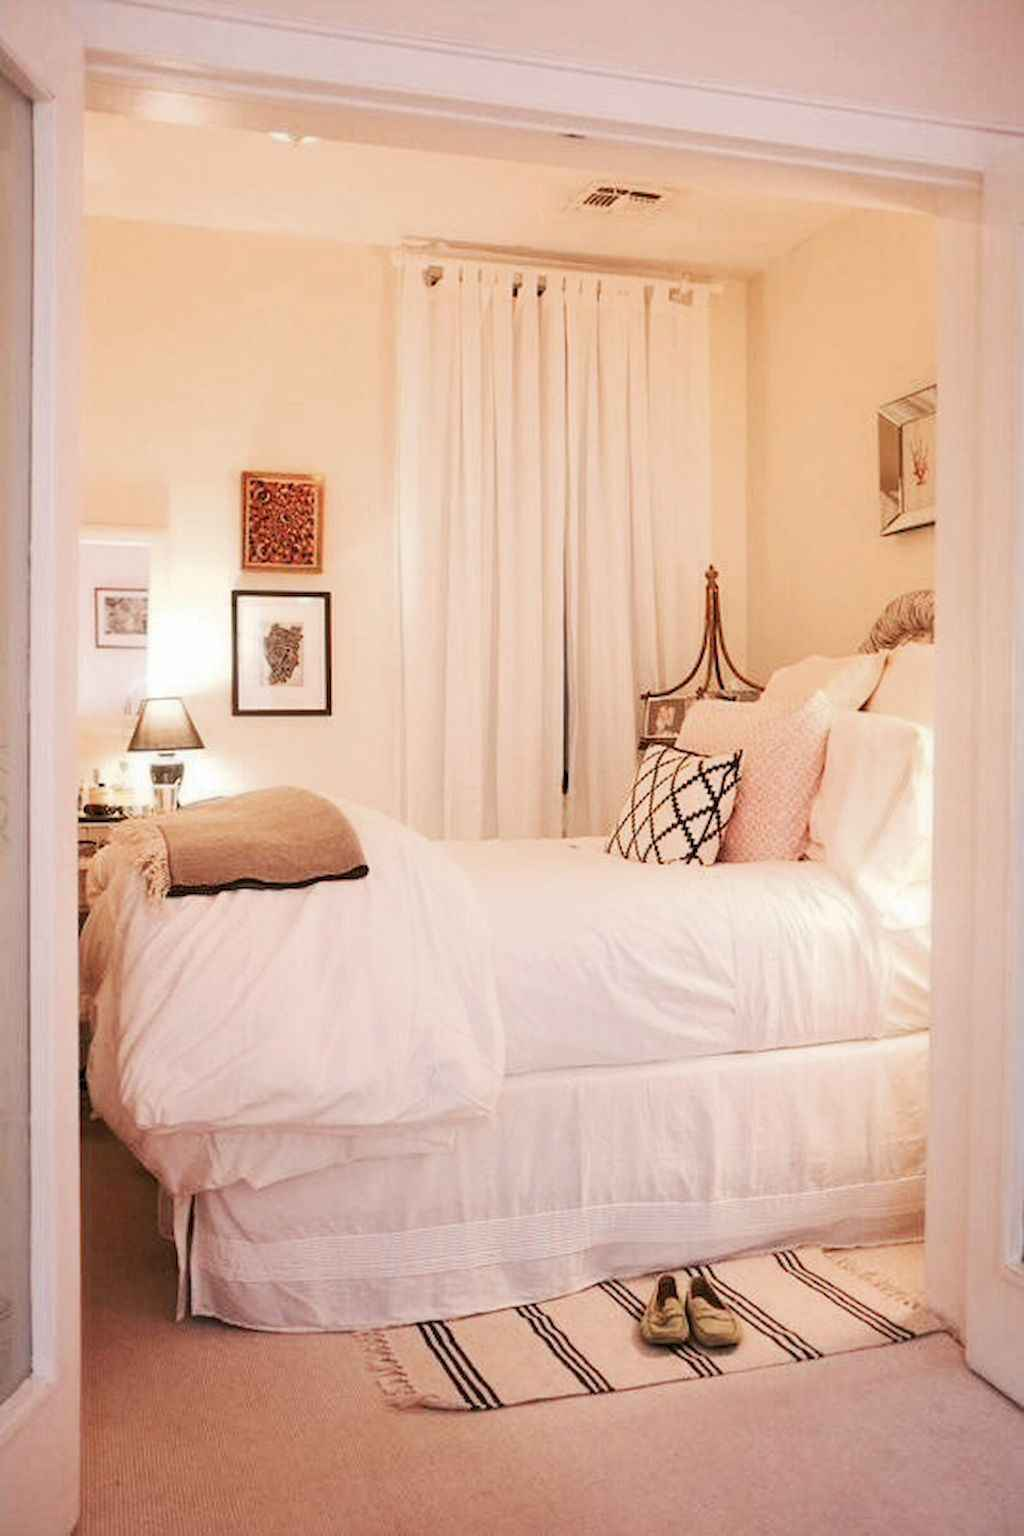 Cozy apartment decorating ideas on a budget (21)